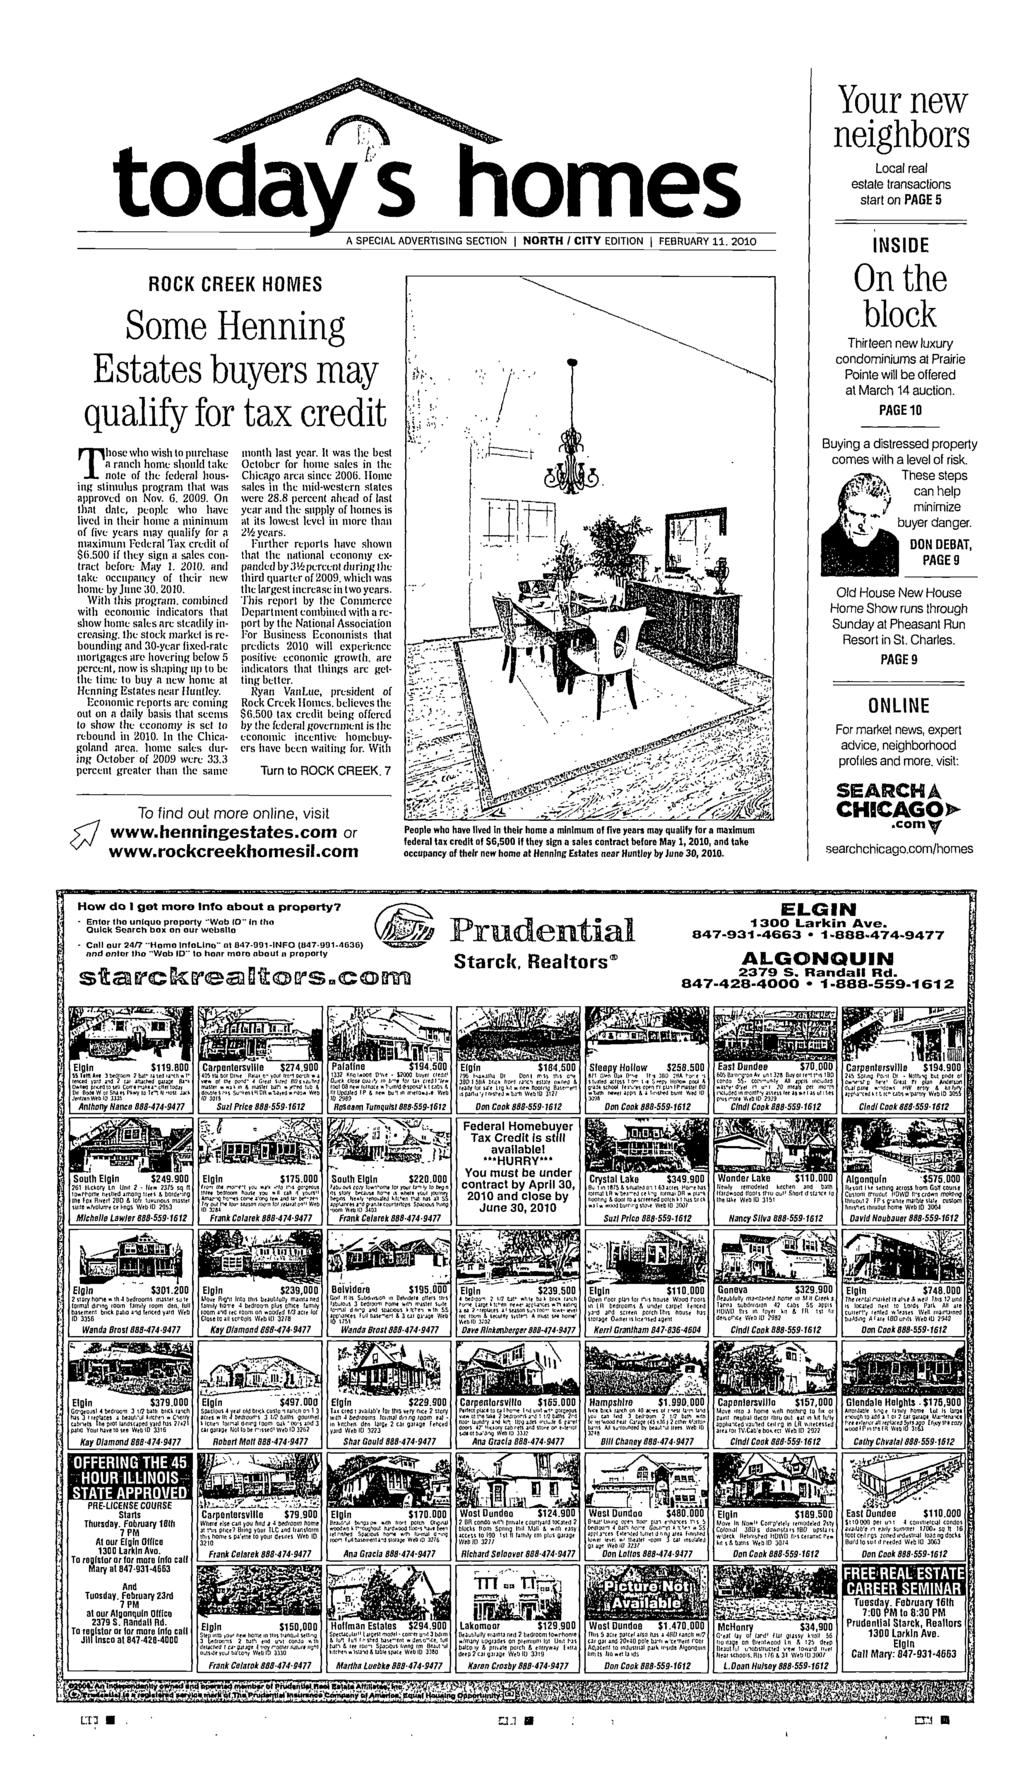 February 11 2010 A Pioneer Press Publication S200 O Yong Ma Magic Com Stainless Tenun Edition Multi Pot Mc 4450 P Merah I Todays Homes Specal Advertsng Secton North Cty Edton Feoruary Rock Creek